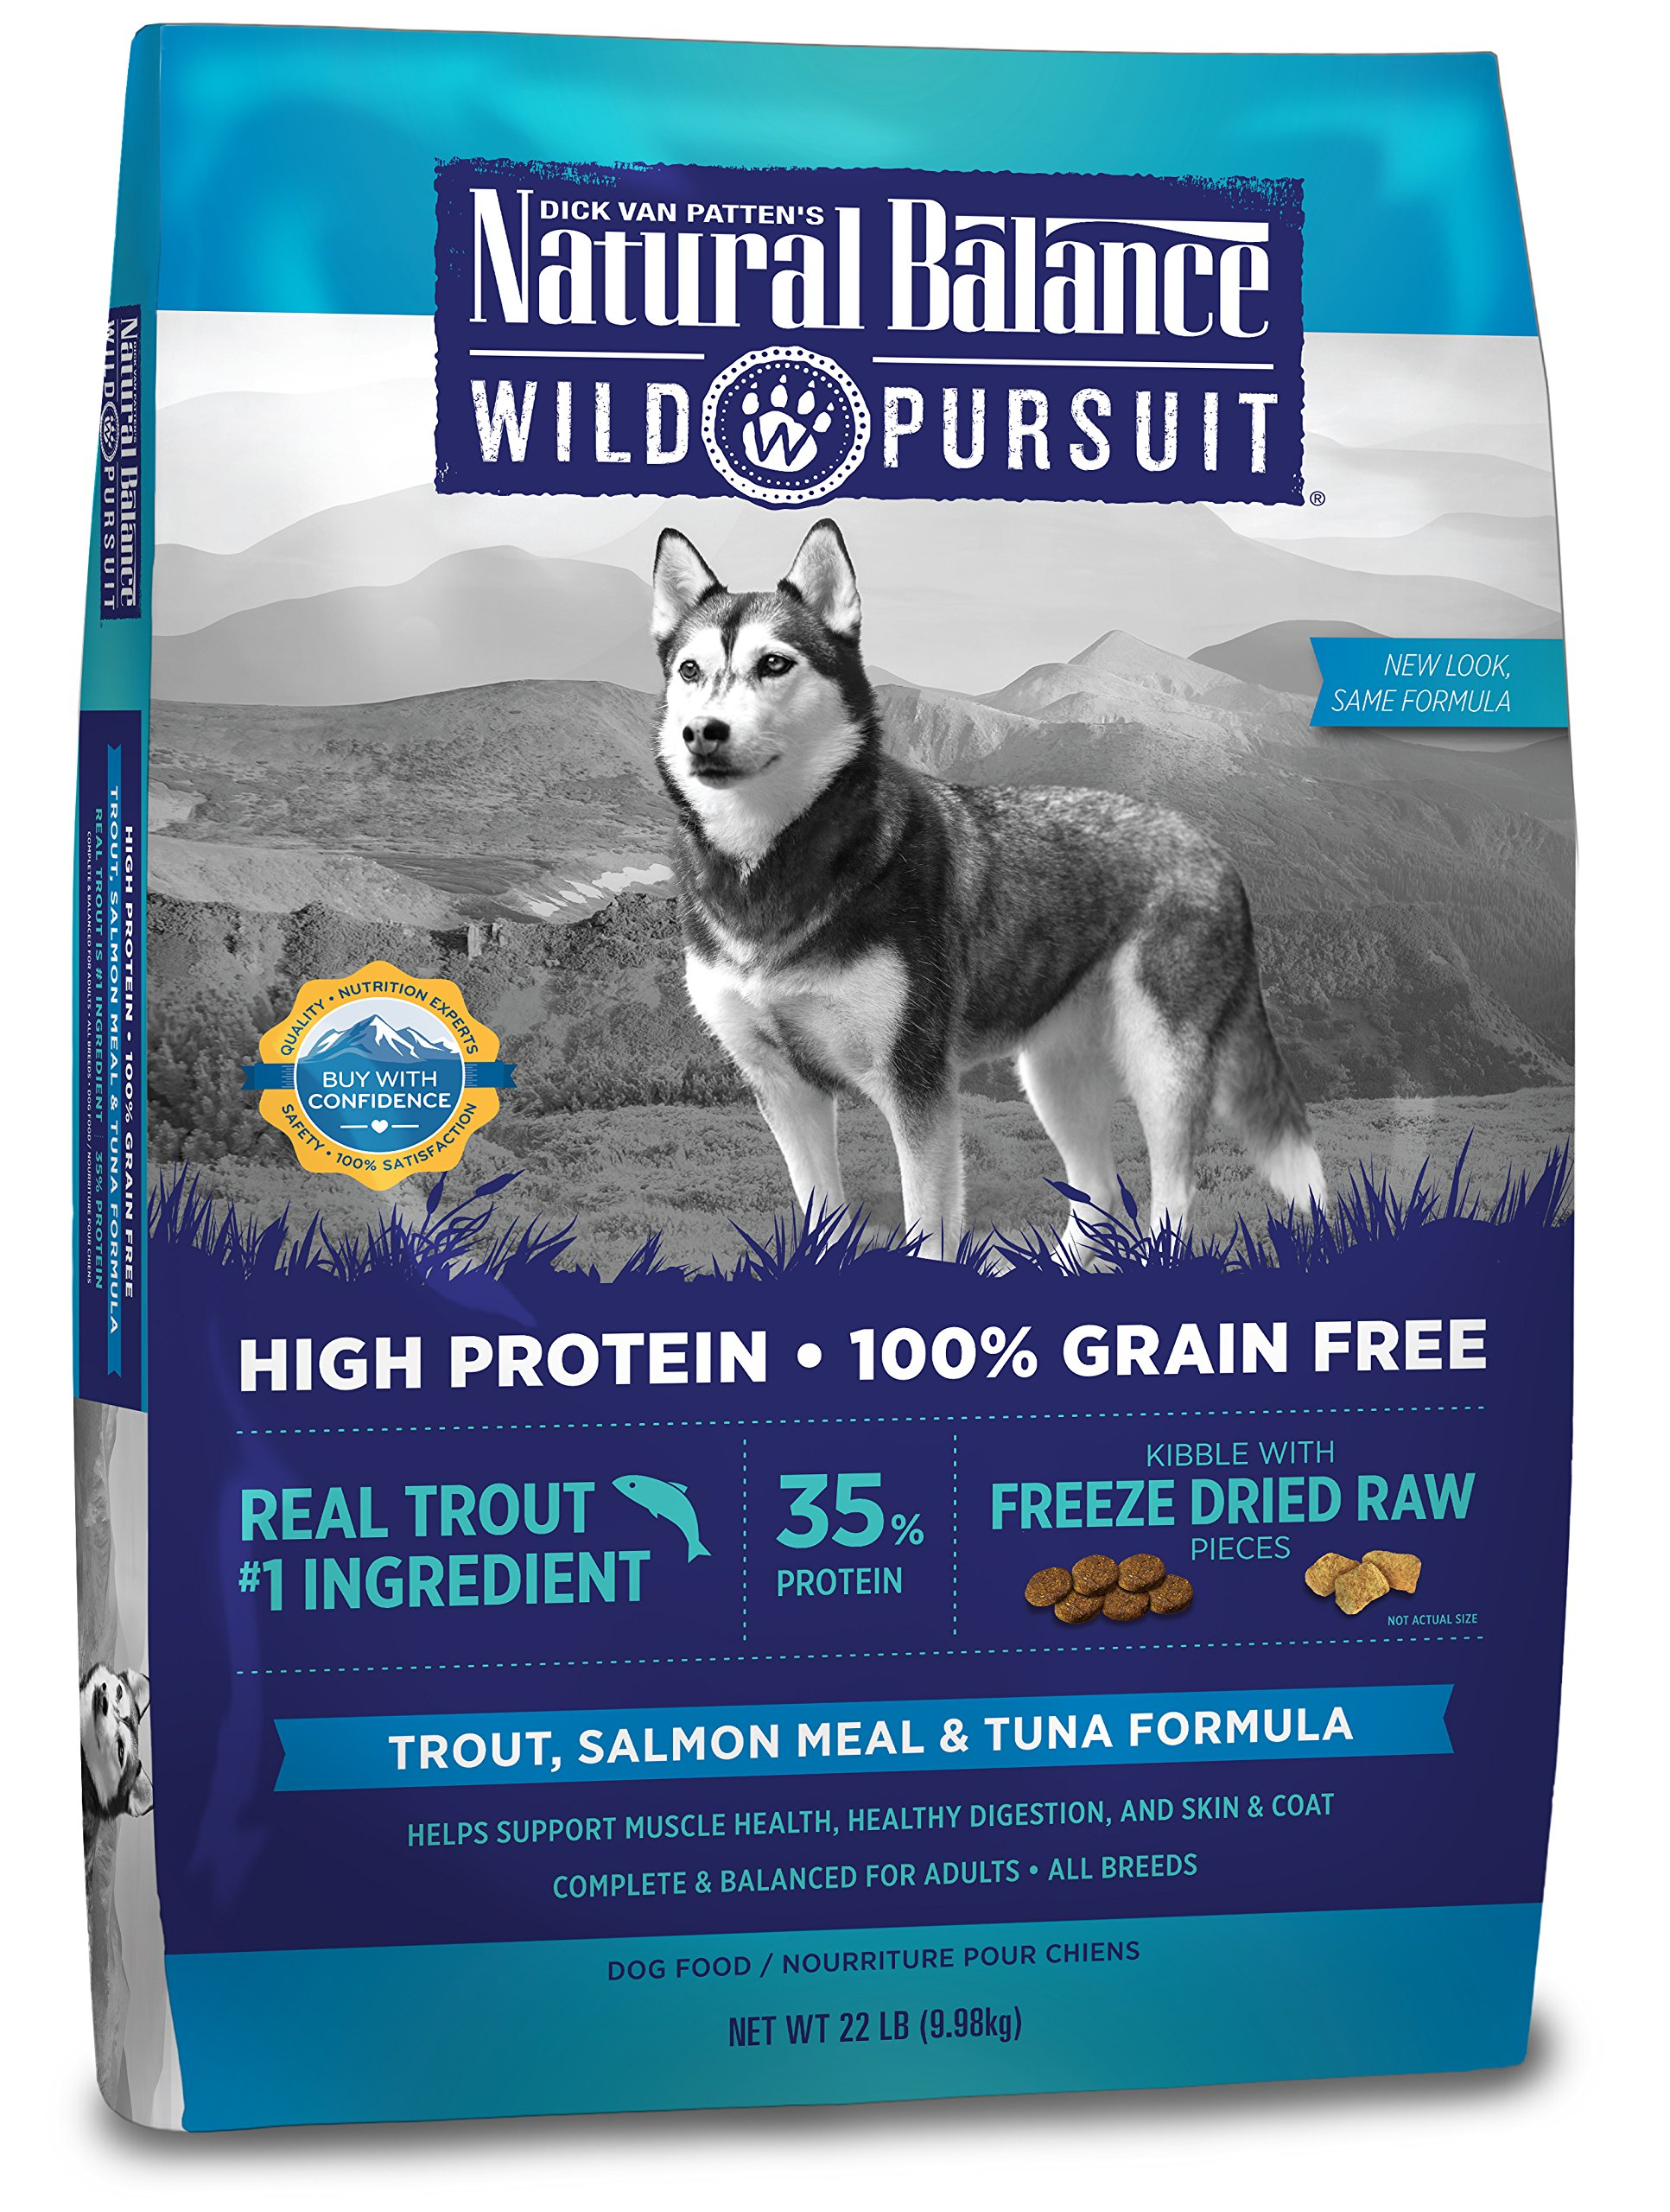 Natural Balance Wild Pursuit High Protein Grain Free Dry Dog Food, Trout, Salmon Meal & Tuna Formula, 22-Pound